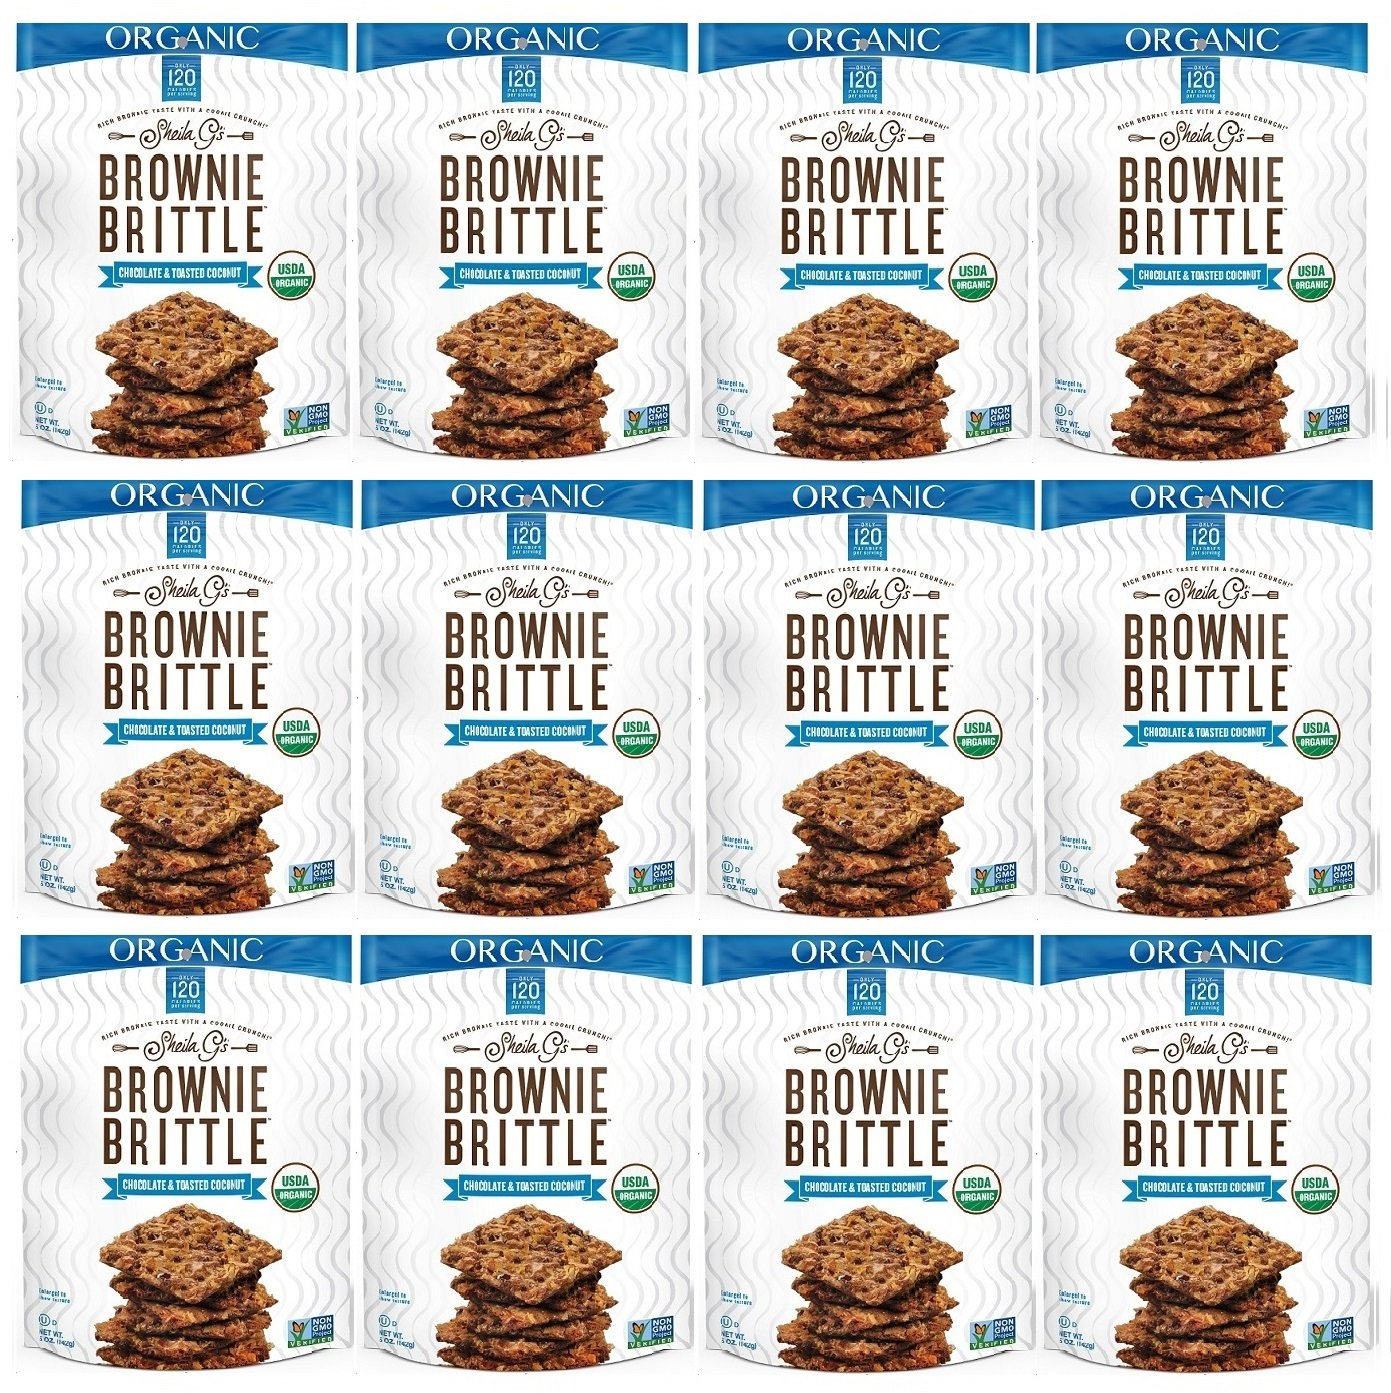 Sheila G's Brownie Brittle, Organic Non-GMO Chocolate & Toasted Coconut, 5 Ounce Bag (Pack of 12) (Packaging May Vary)